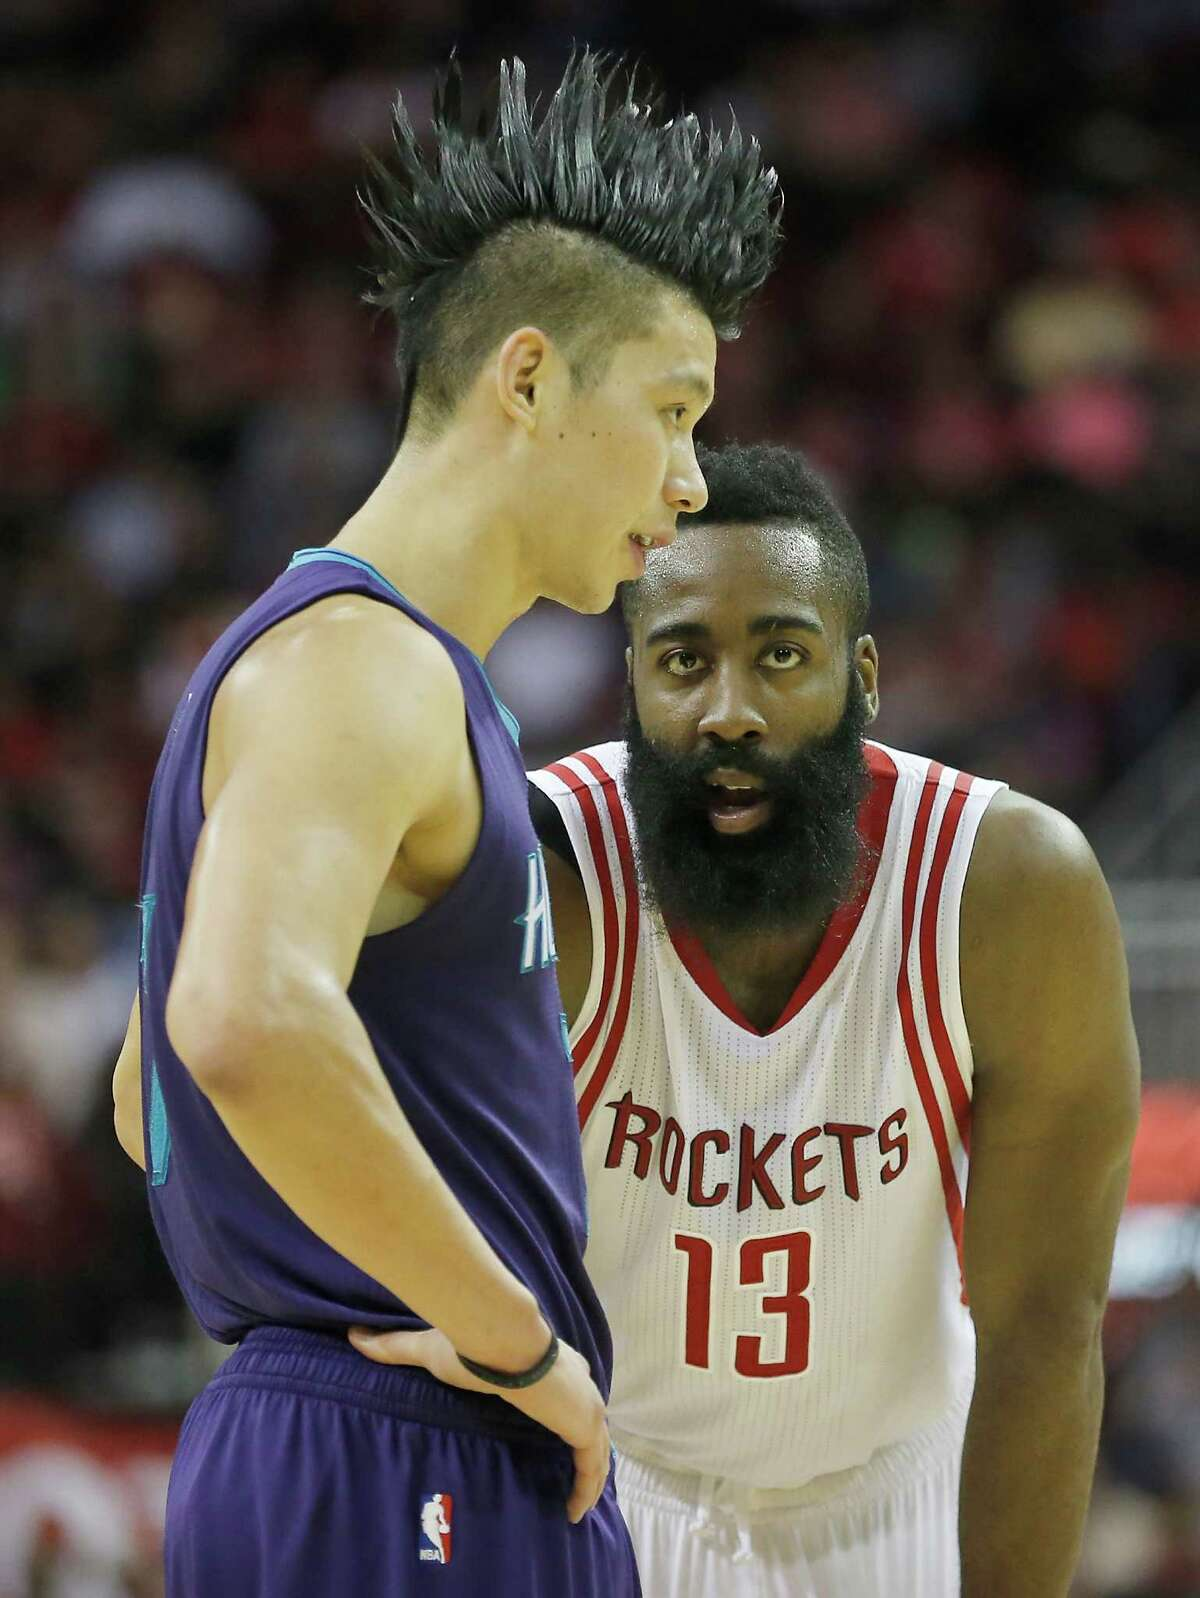 The Beard meets the mohawk. Rockets guard James Harden eyes Hornets guard Jeremy Lin, who also might pick up a nickname or two with his hairstyle. Lin, a former Rocket, was 4-for-6 from the field for 13 points in nearly 22 minutes off the bench in a losing cause.